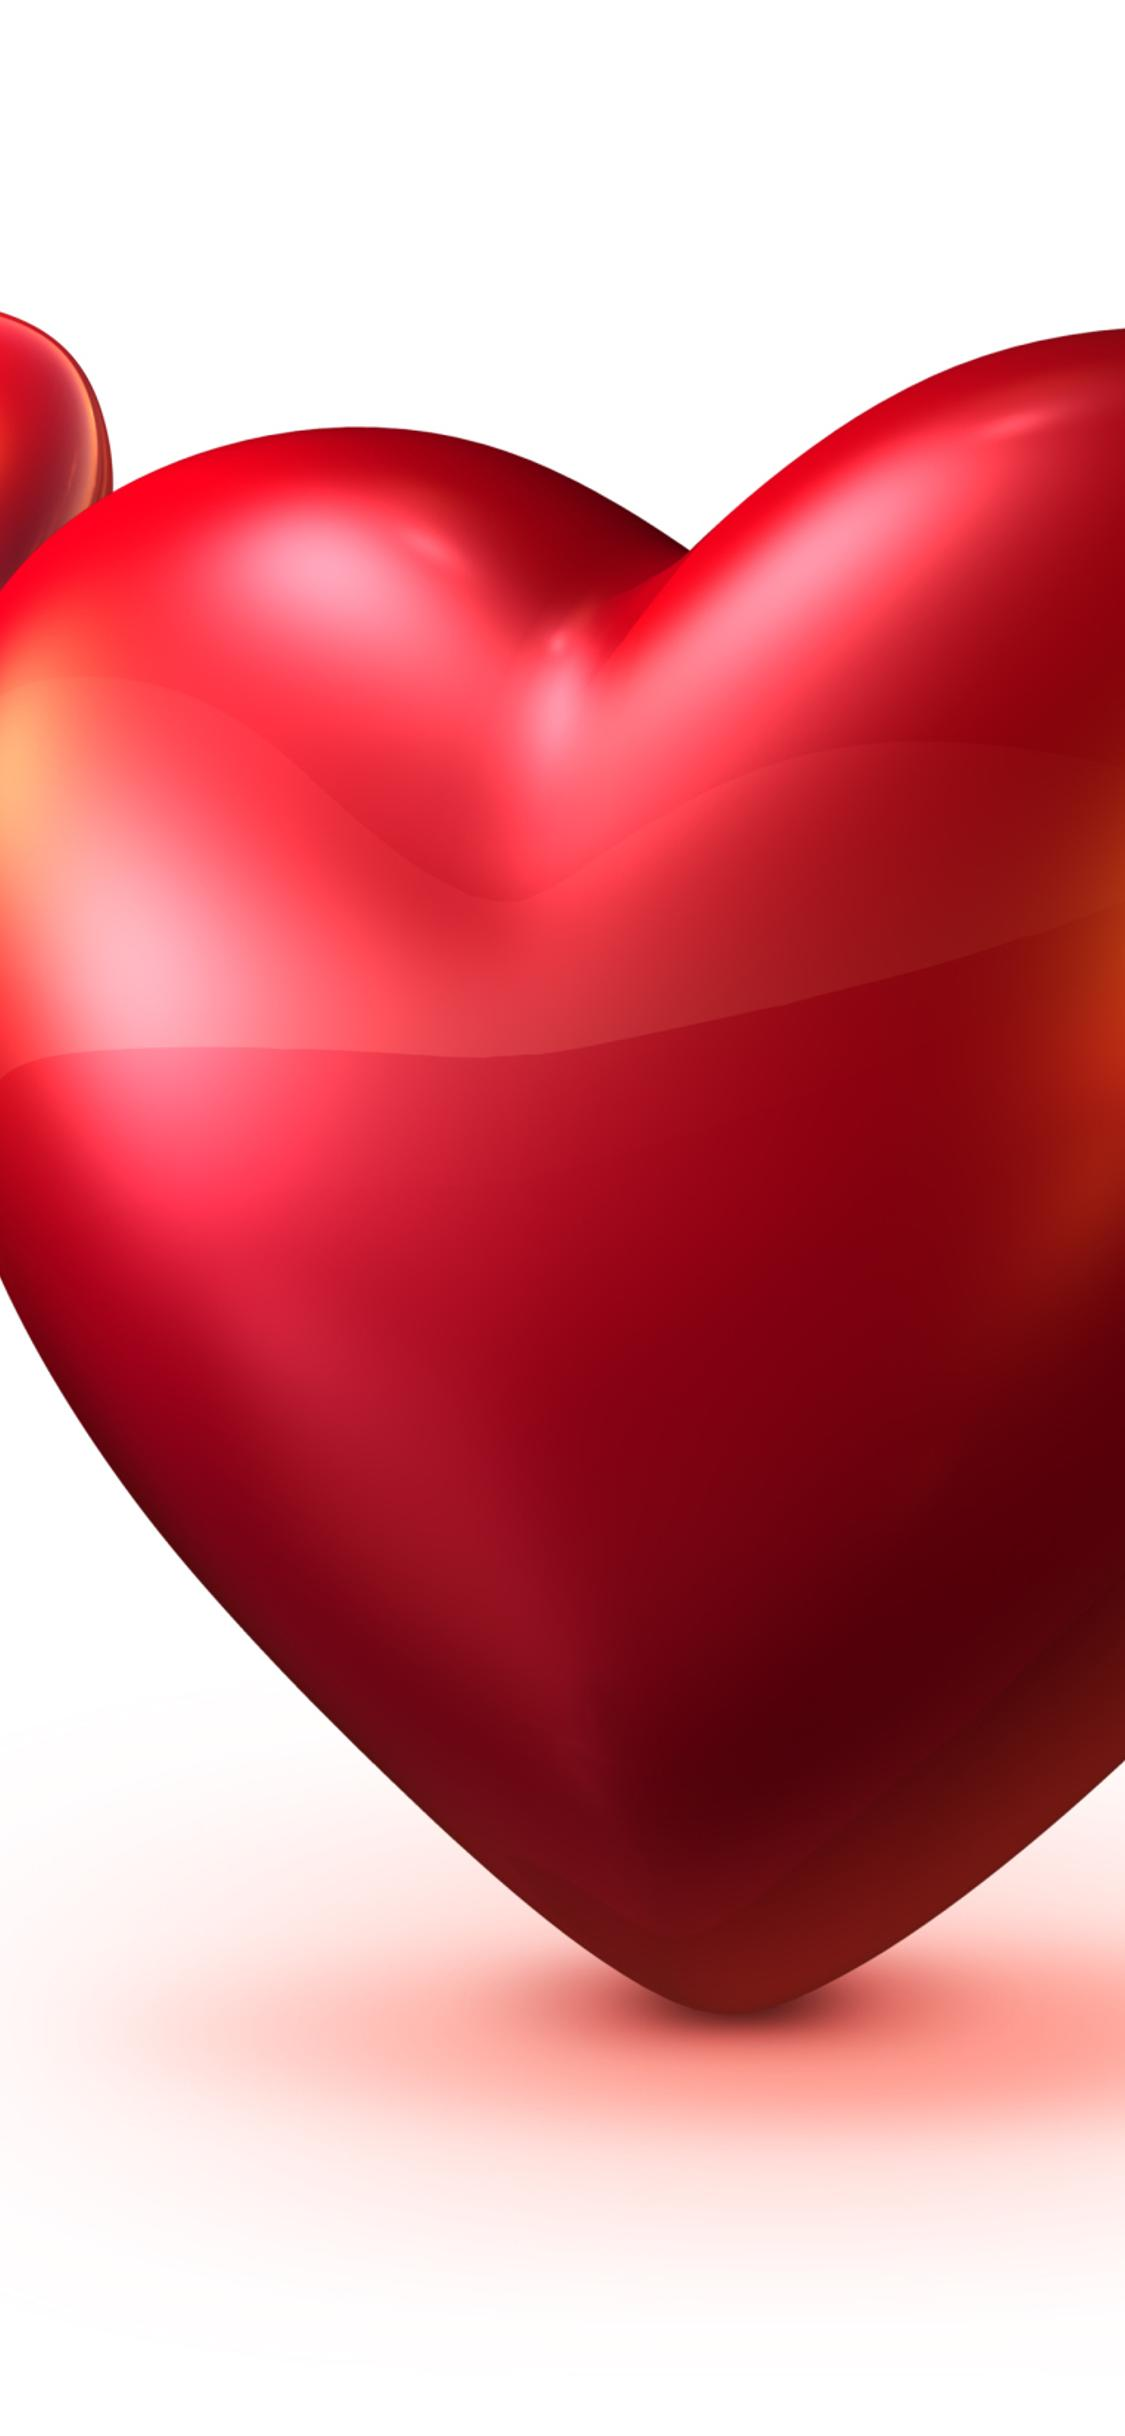 Two Red Hearts 3d Hd Love Wallpaper